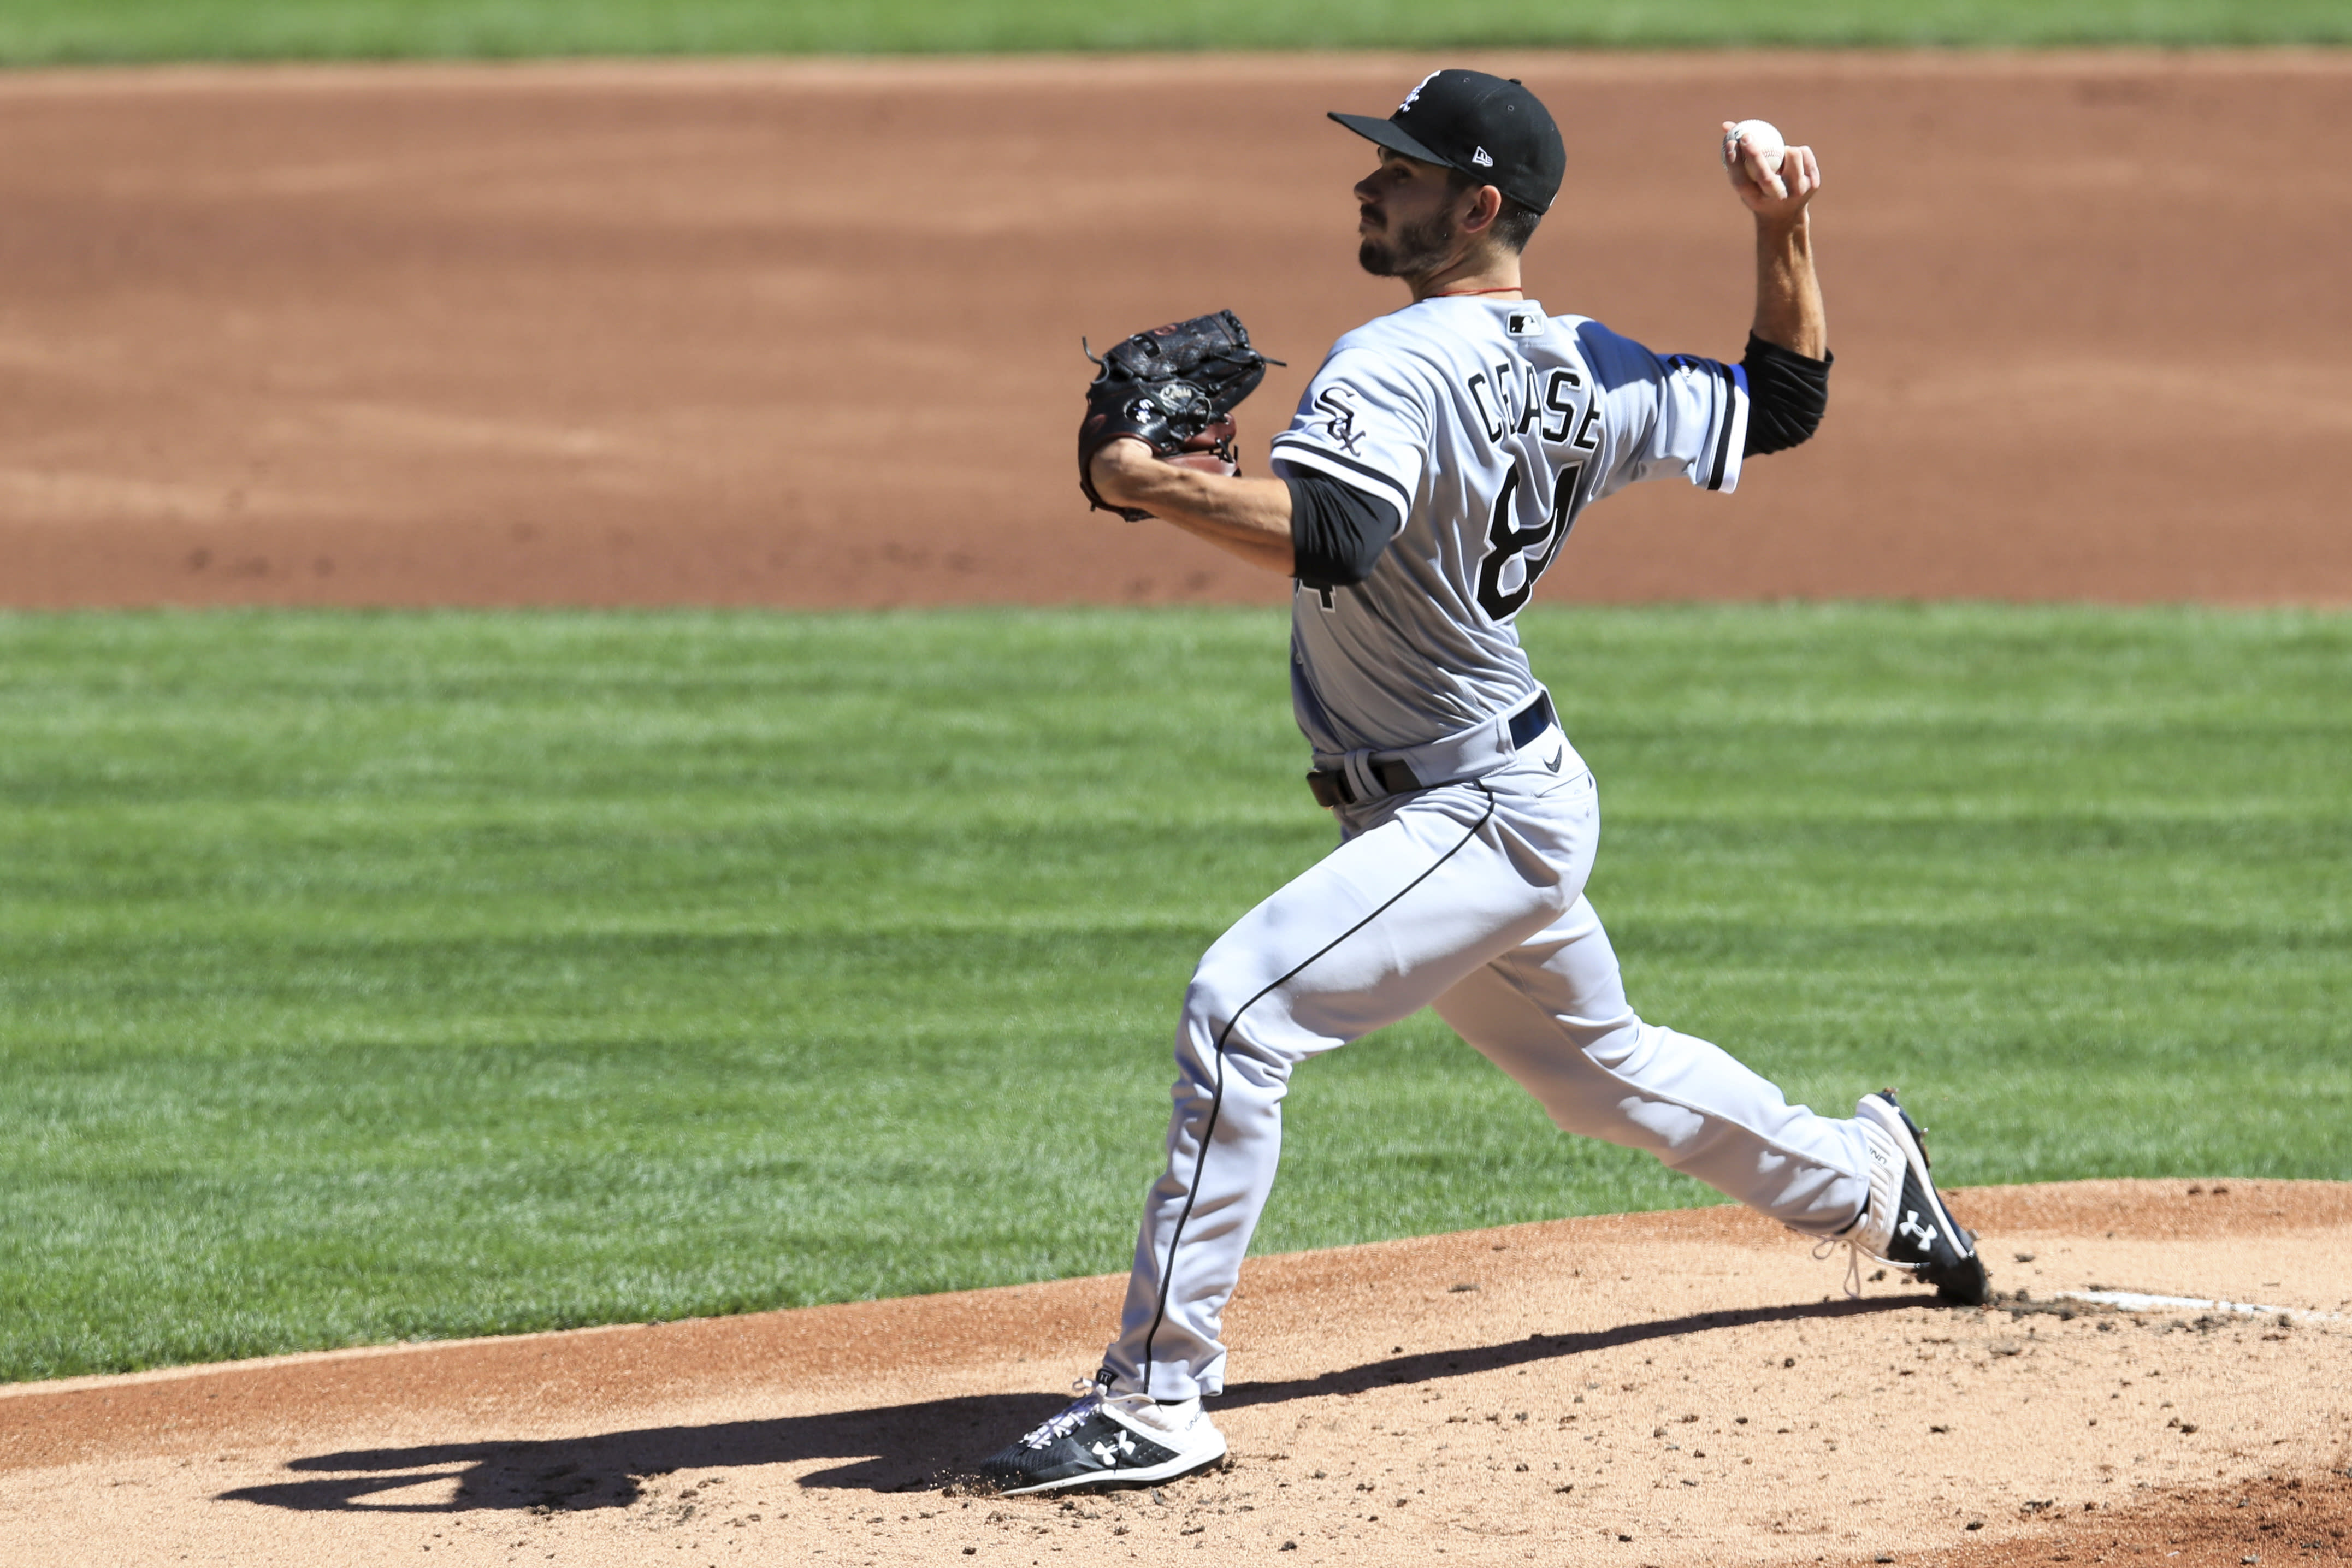 Chicago White Sox' Dylan Cease throws in the first inning during a baseball game against the Cincinnati Reds in Cincinnati, Sunday, Sept. 20, 2020. (AP Photo/Aaron Doster)